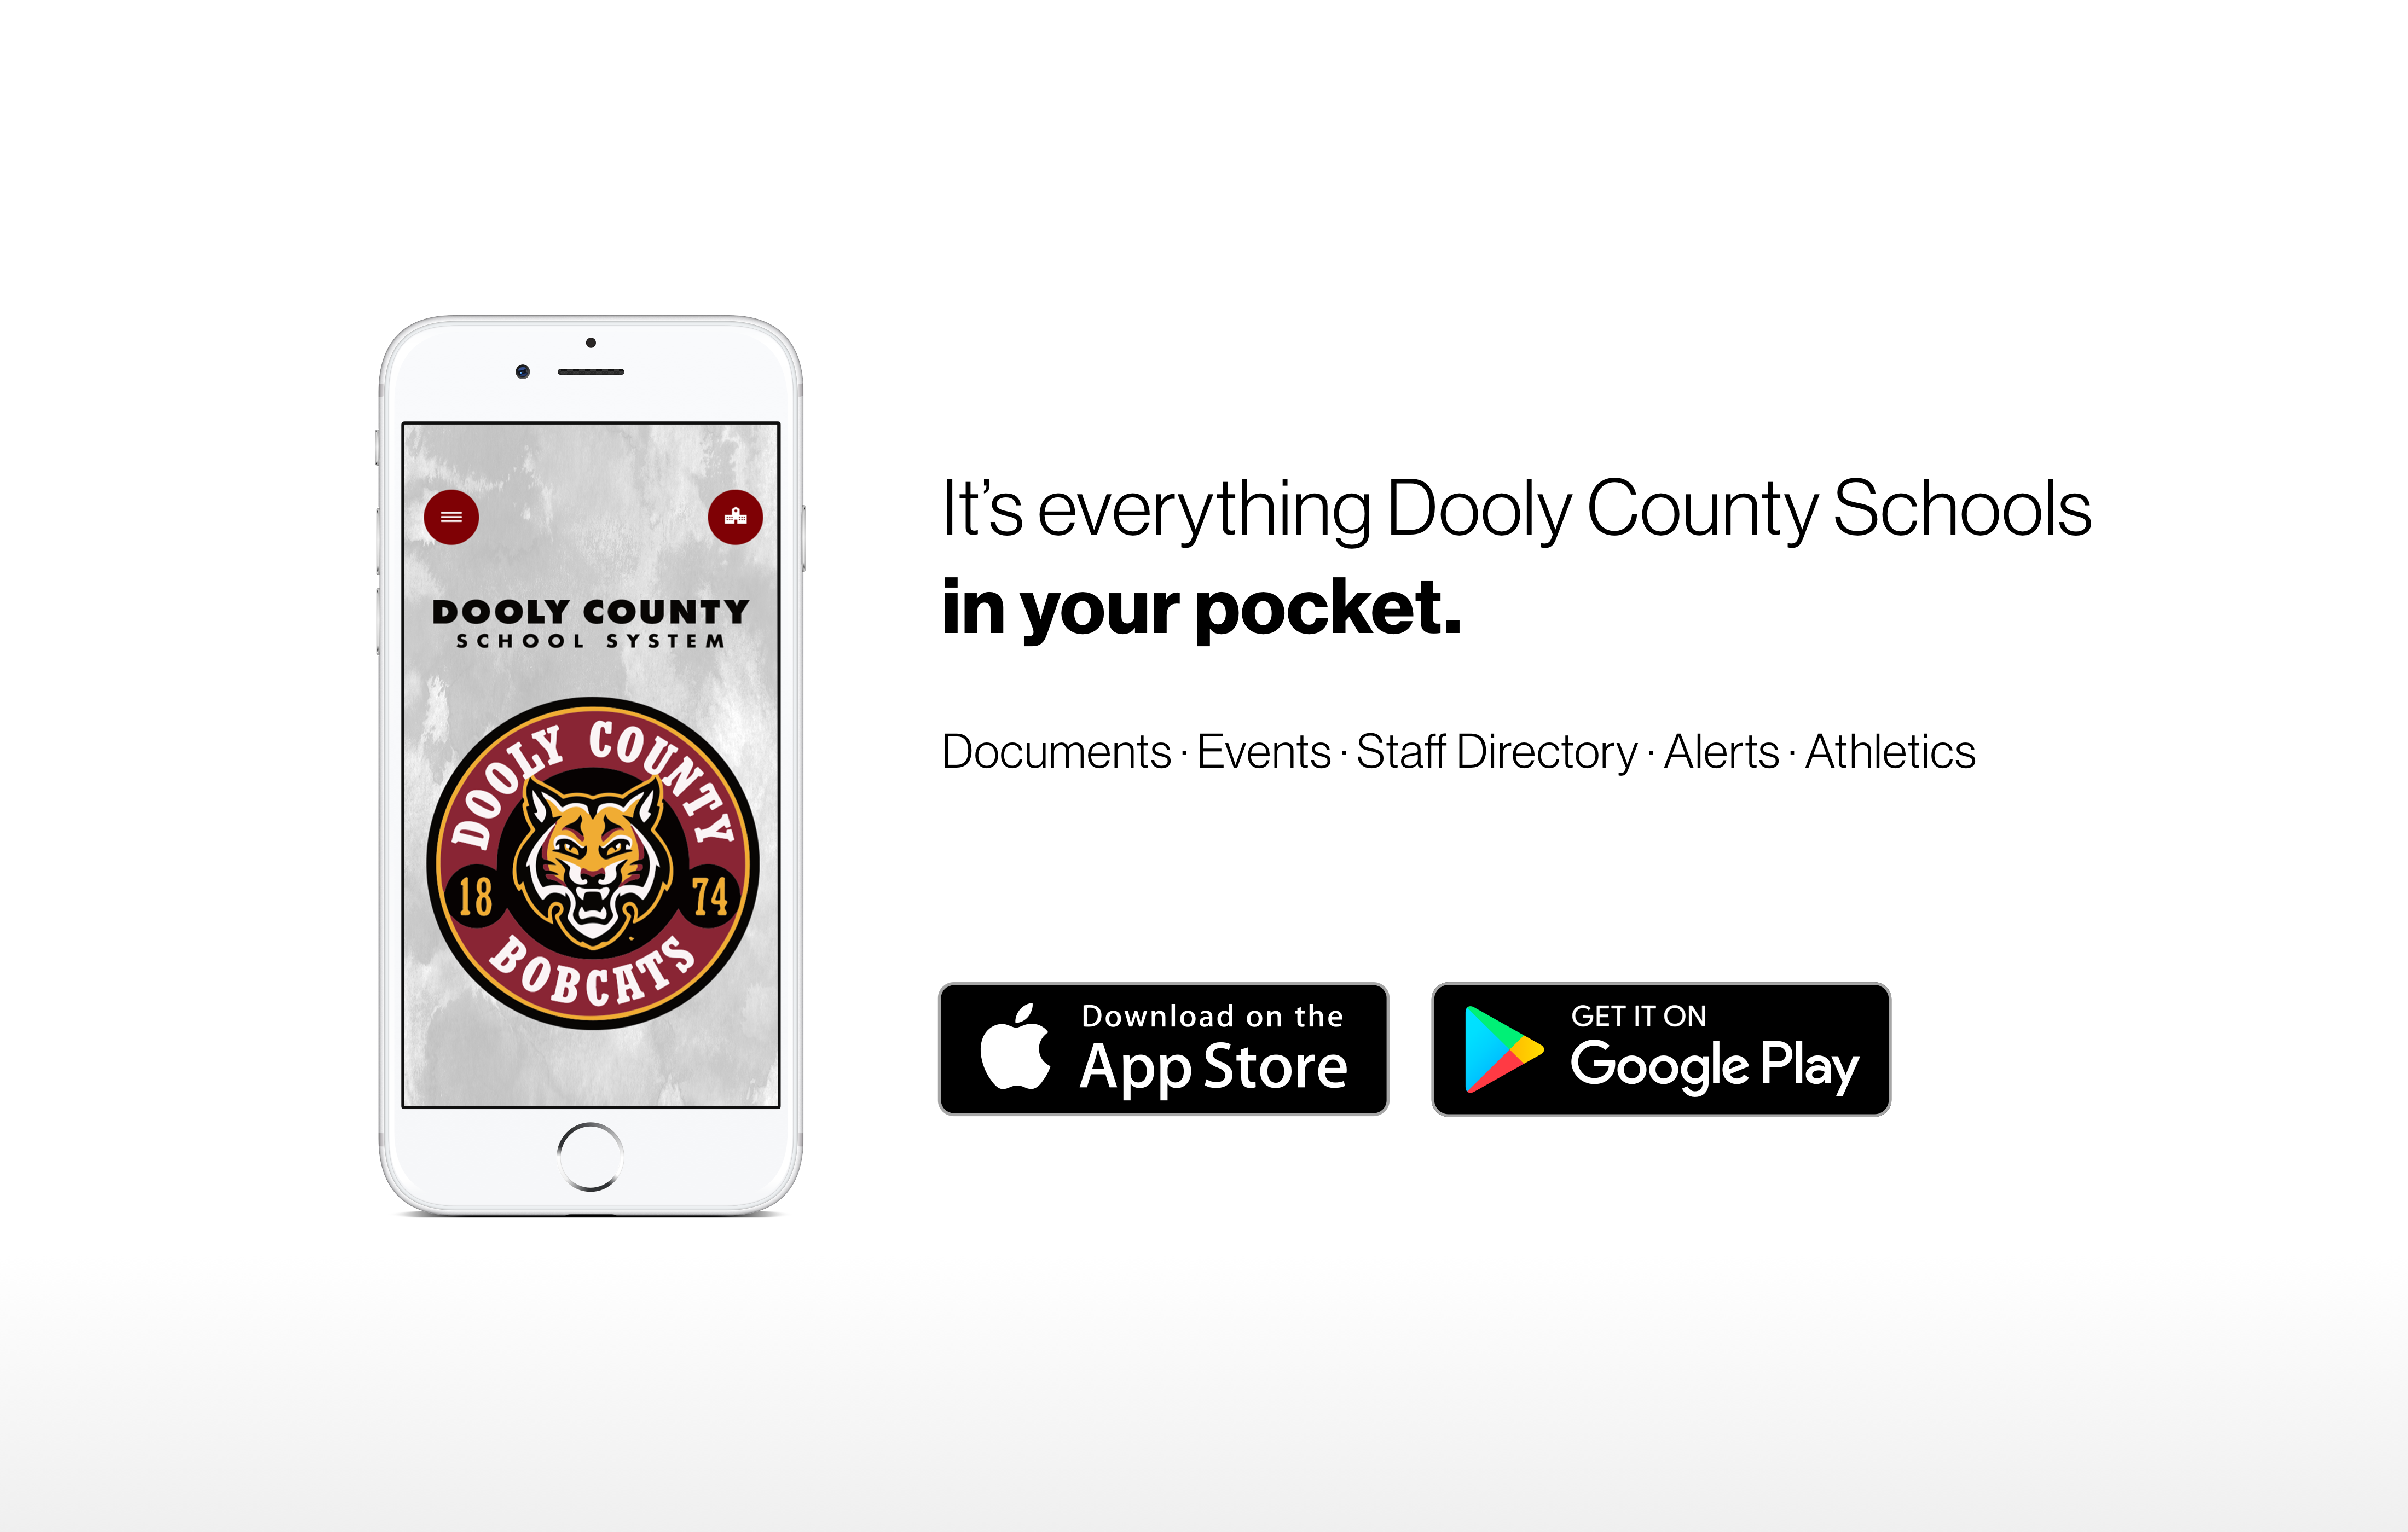 It's everything Dooly County Schools In your pocket